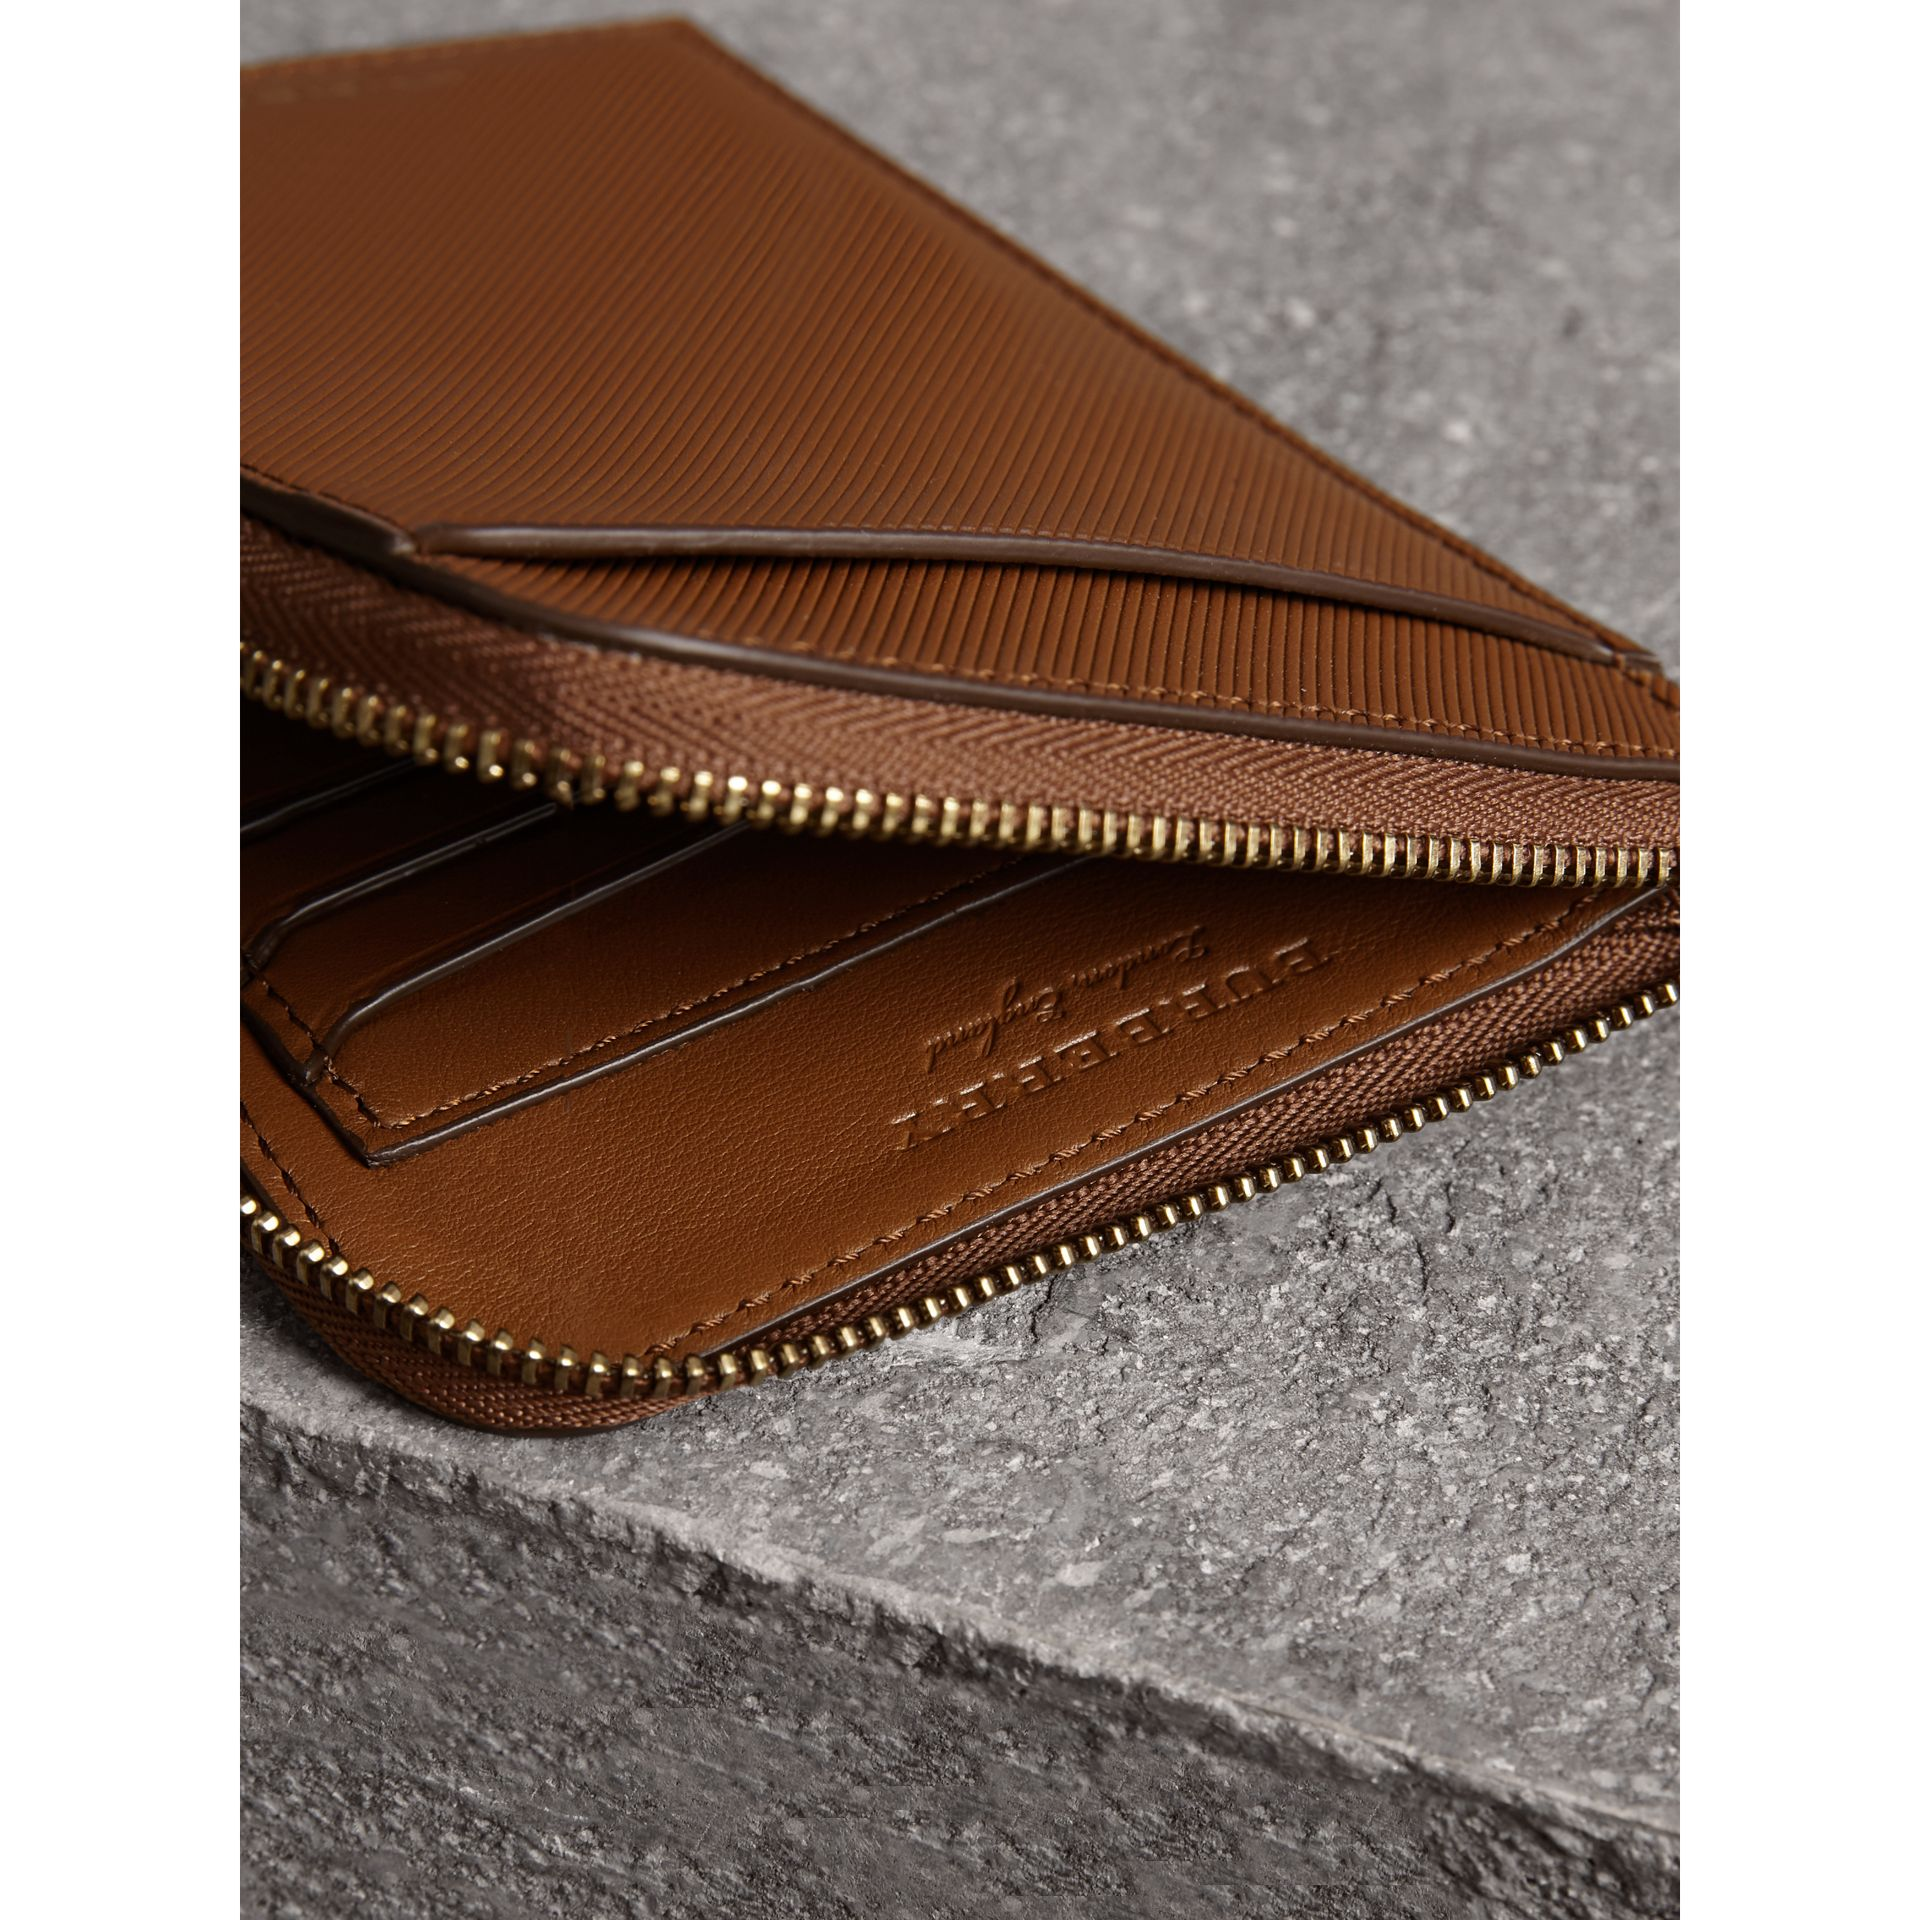 Trench Leather Ziparound Passport Holder in Tan | Burberry Canada - gallery image 3